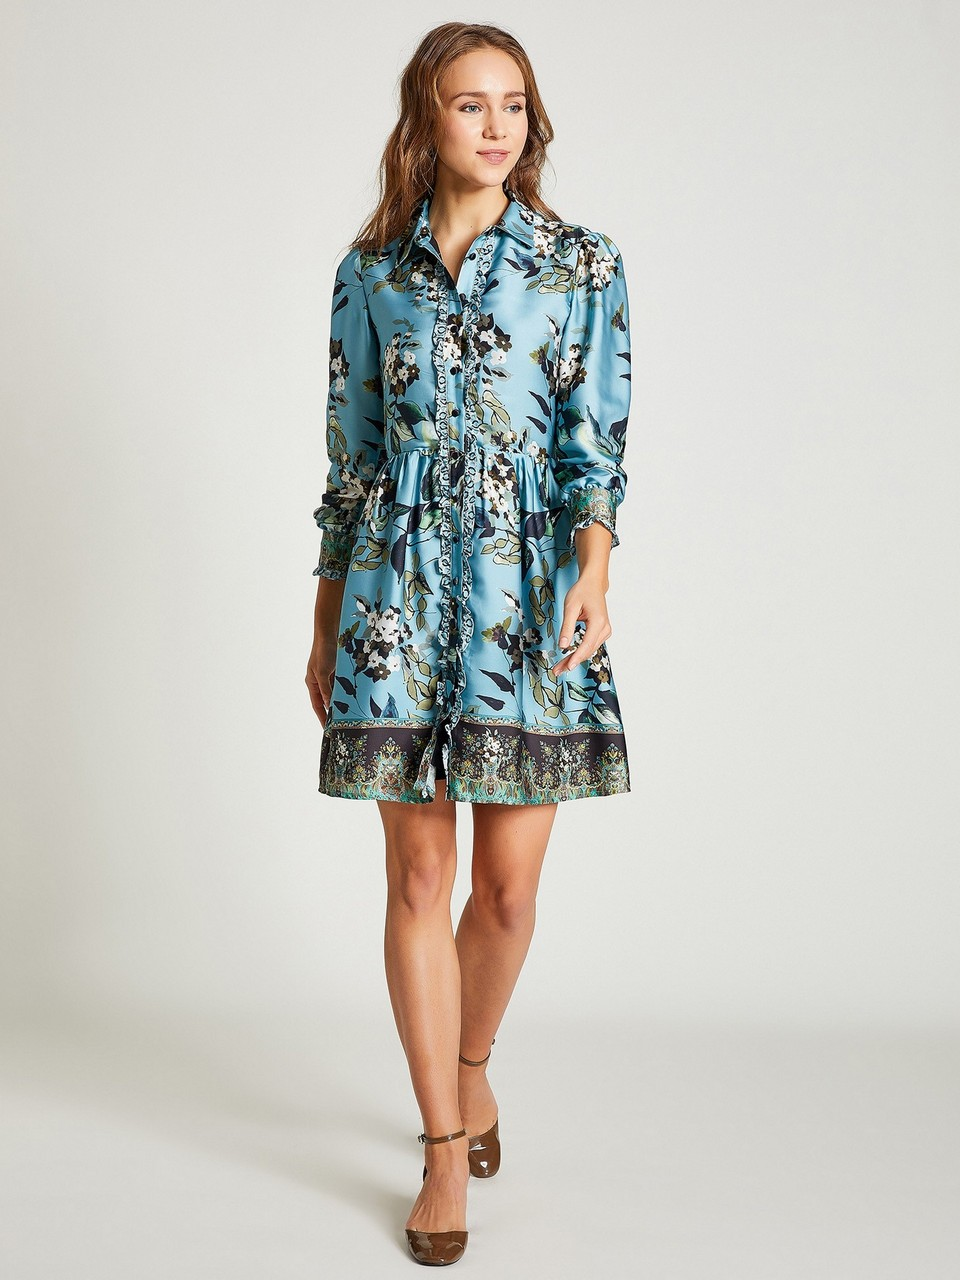 Shirt Neck Floral Patterned Dress